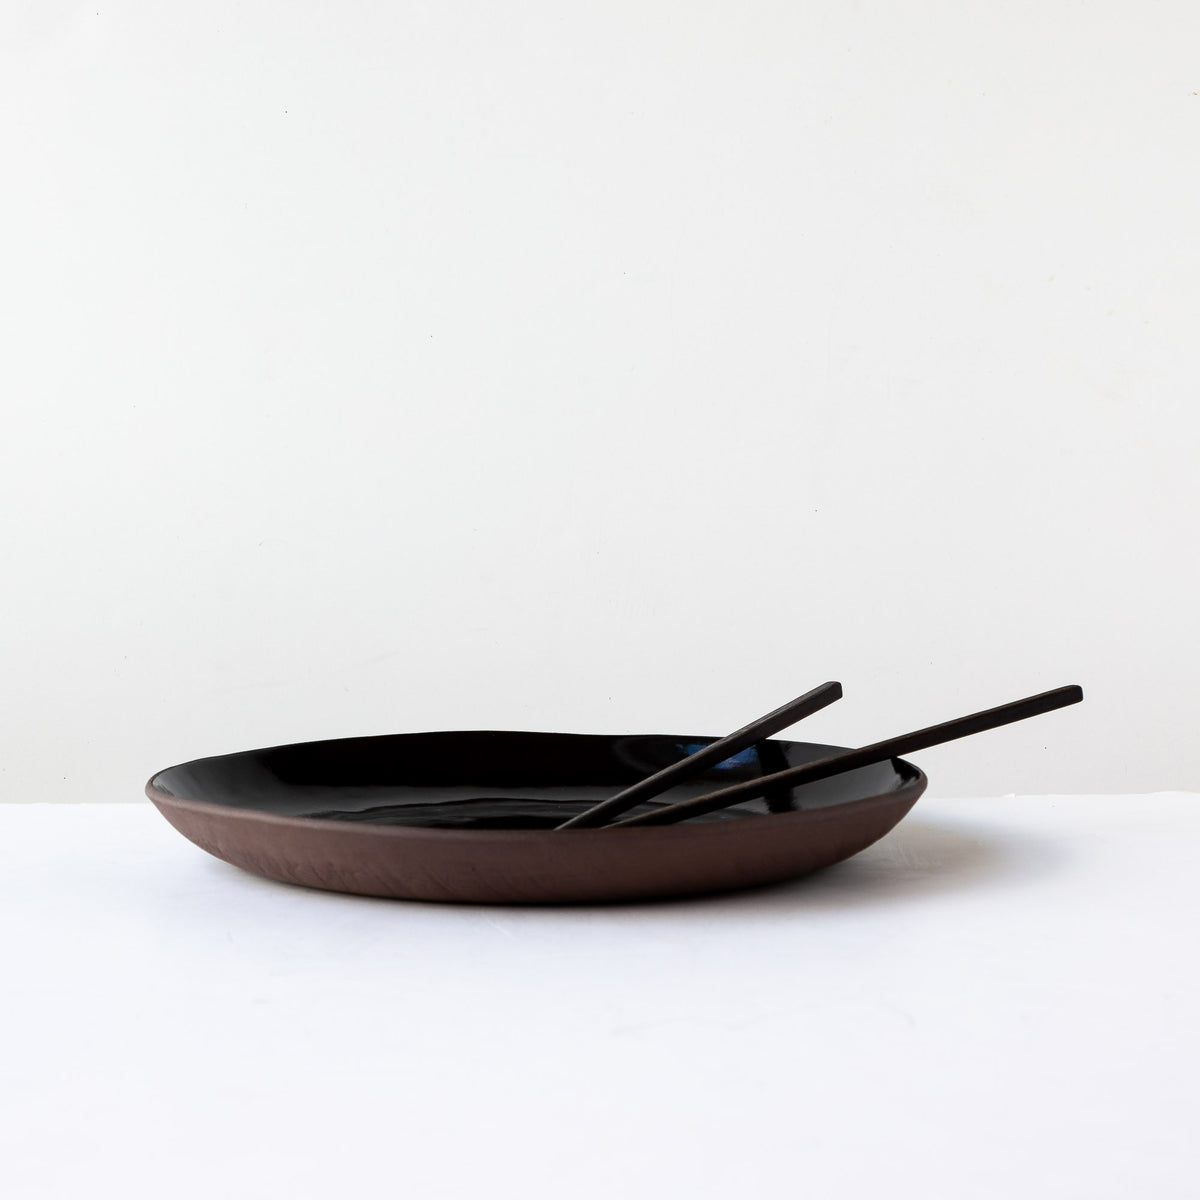 Side View with Chopsticks - Handmade Large Plate in Black Lacquered Stoneware - Sold by Chic & Basta